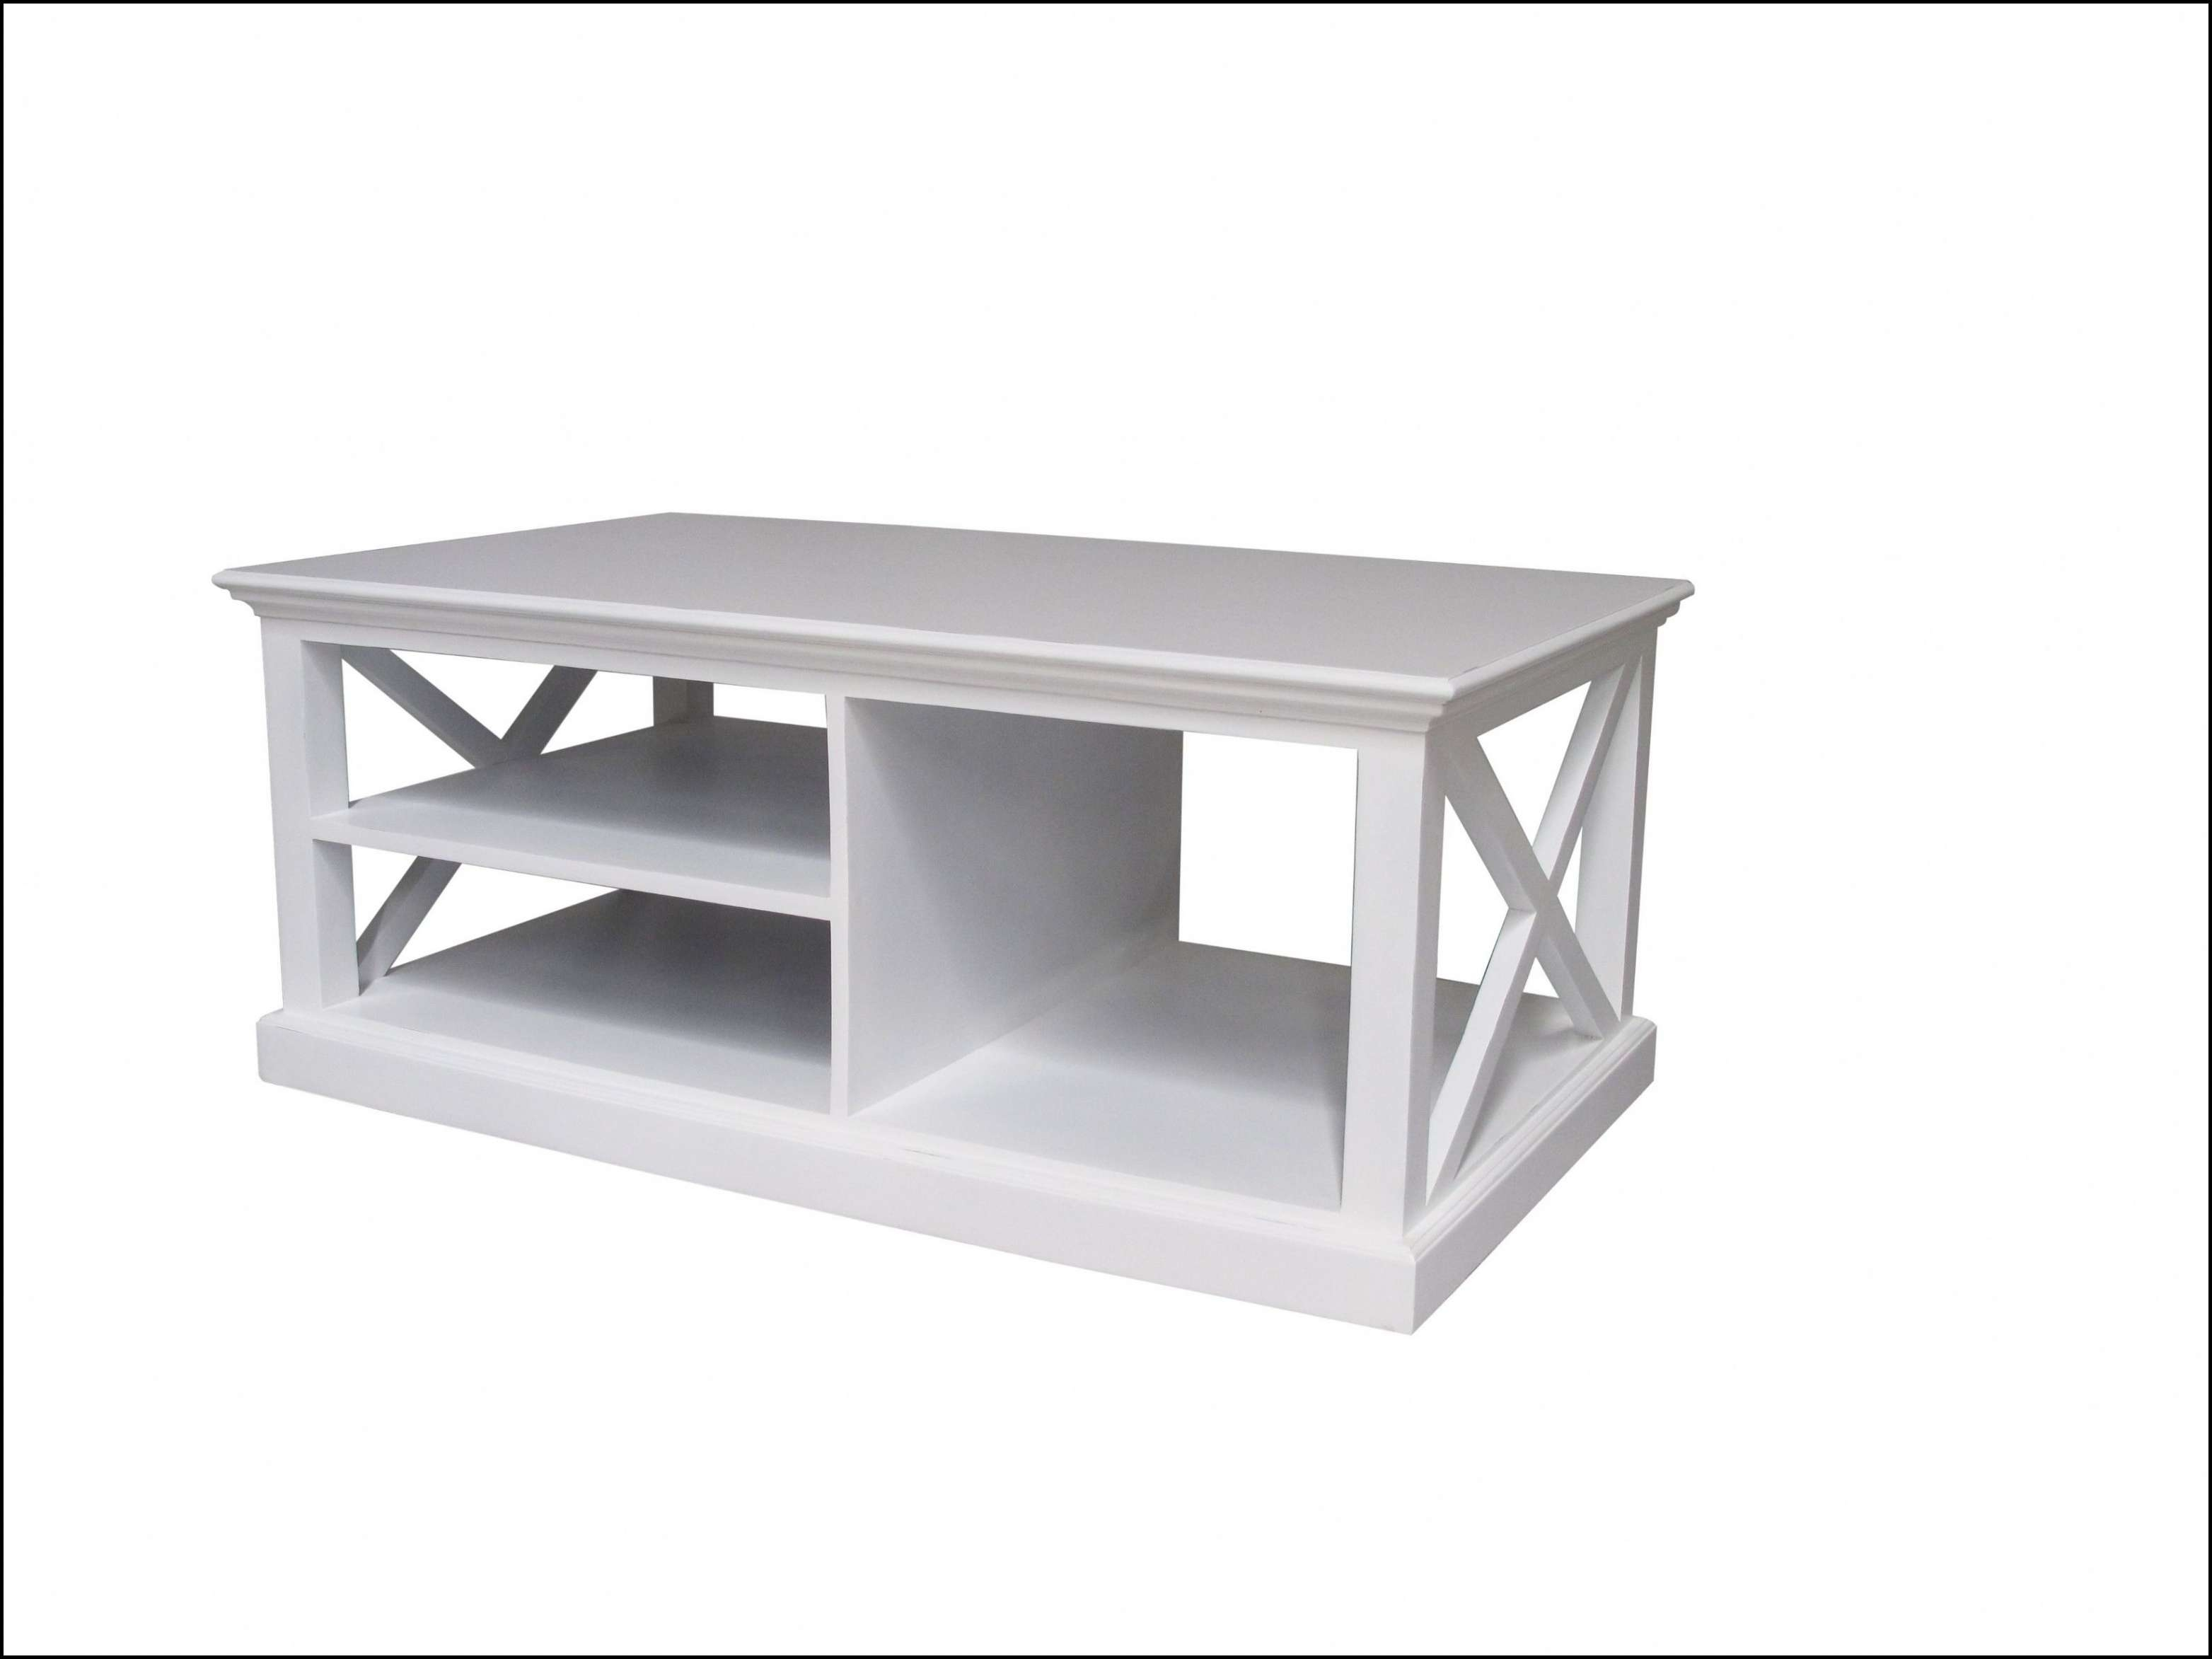 Bordeaux Coffee Table Ikea Unique Impactful Modern White Coffee With Regard To Recent Bordeaux Coffee Tables (View 18 of 20)